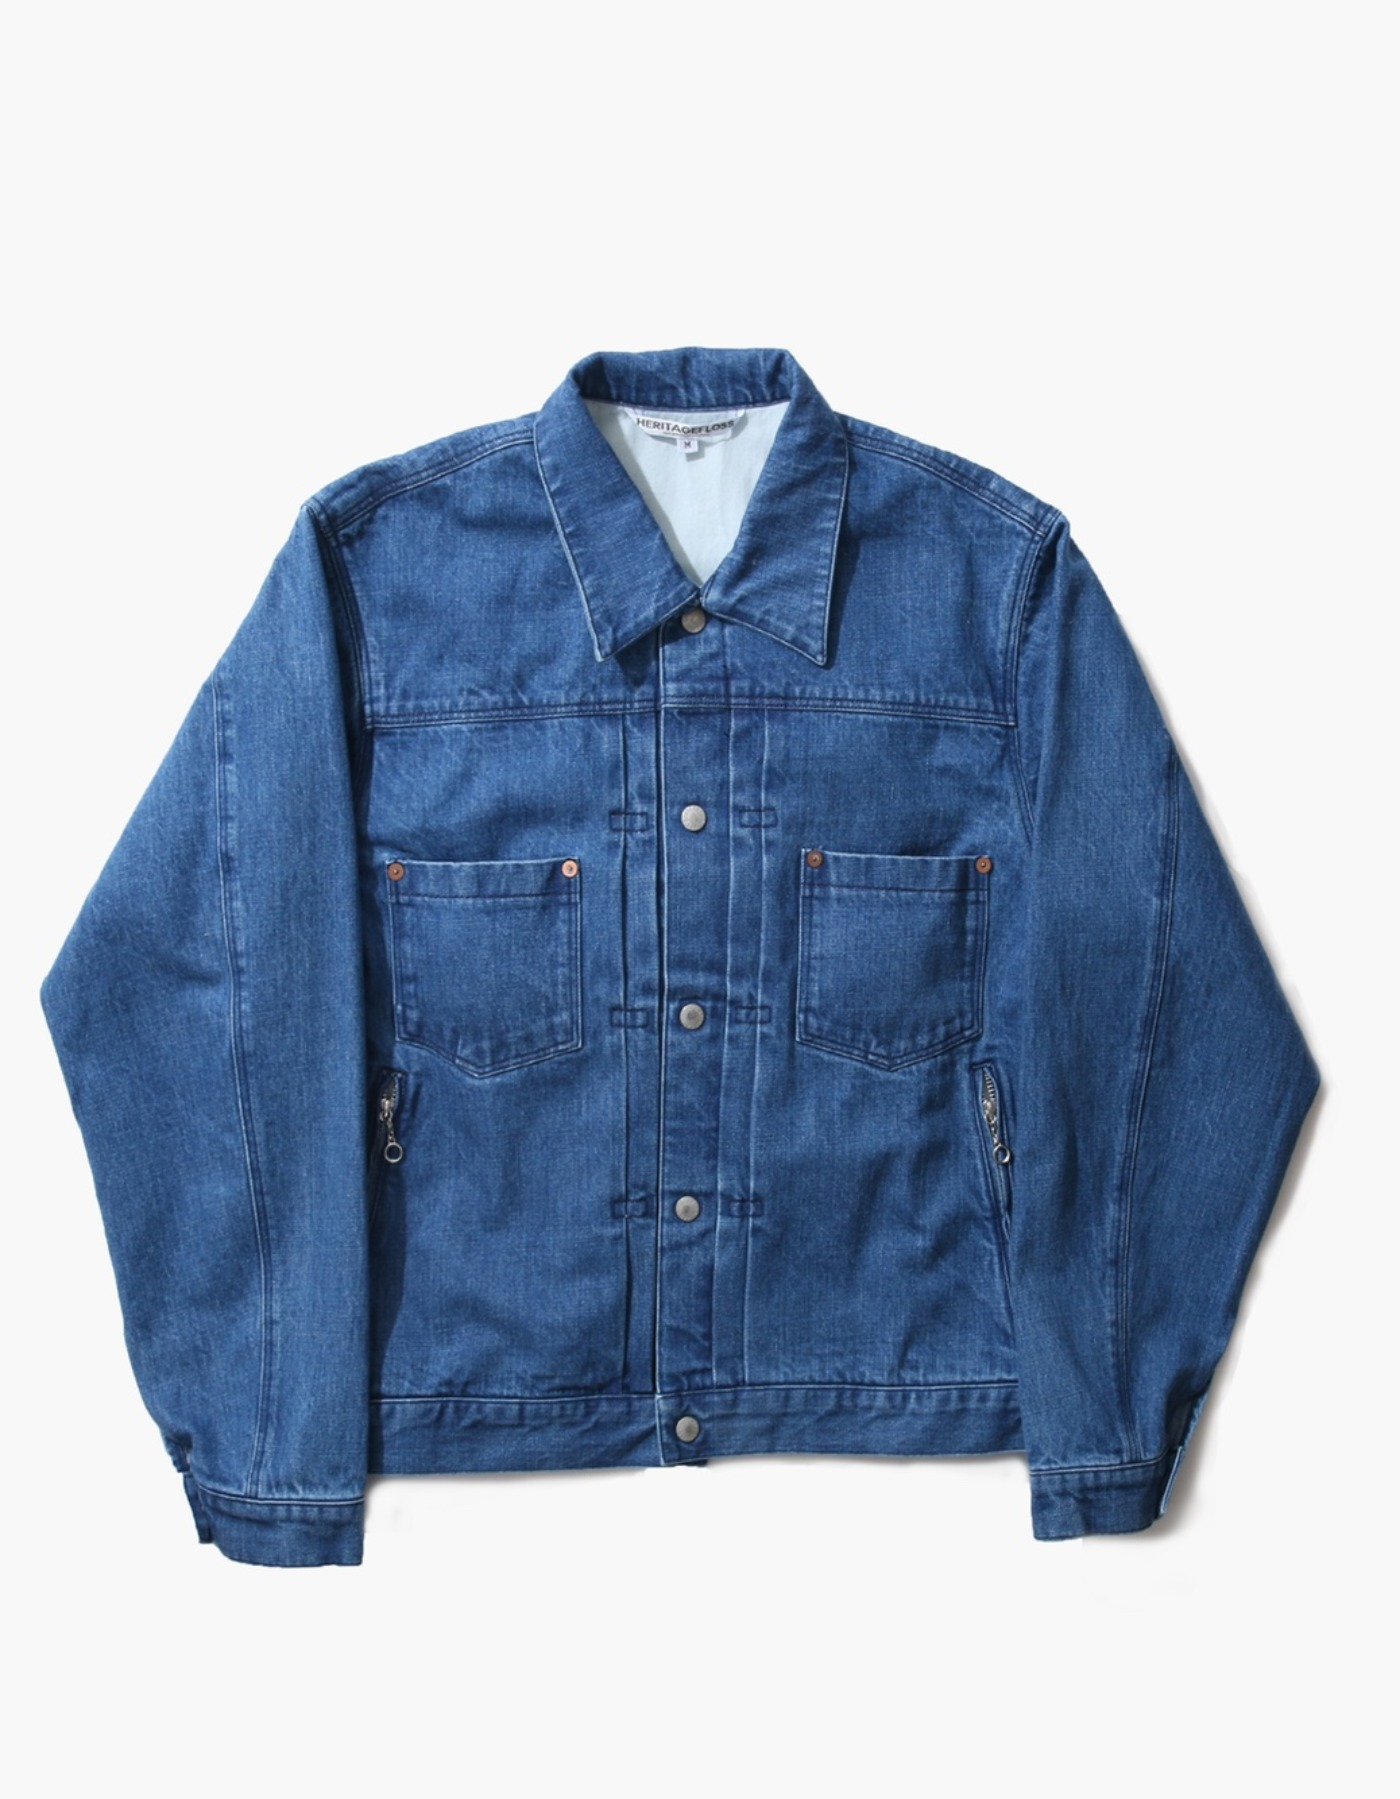 SELVEDGE DENIM TRUCKER JACKET / INDIGO